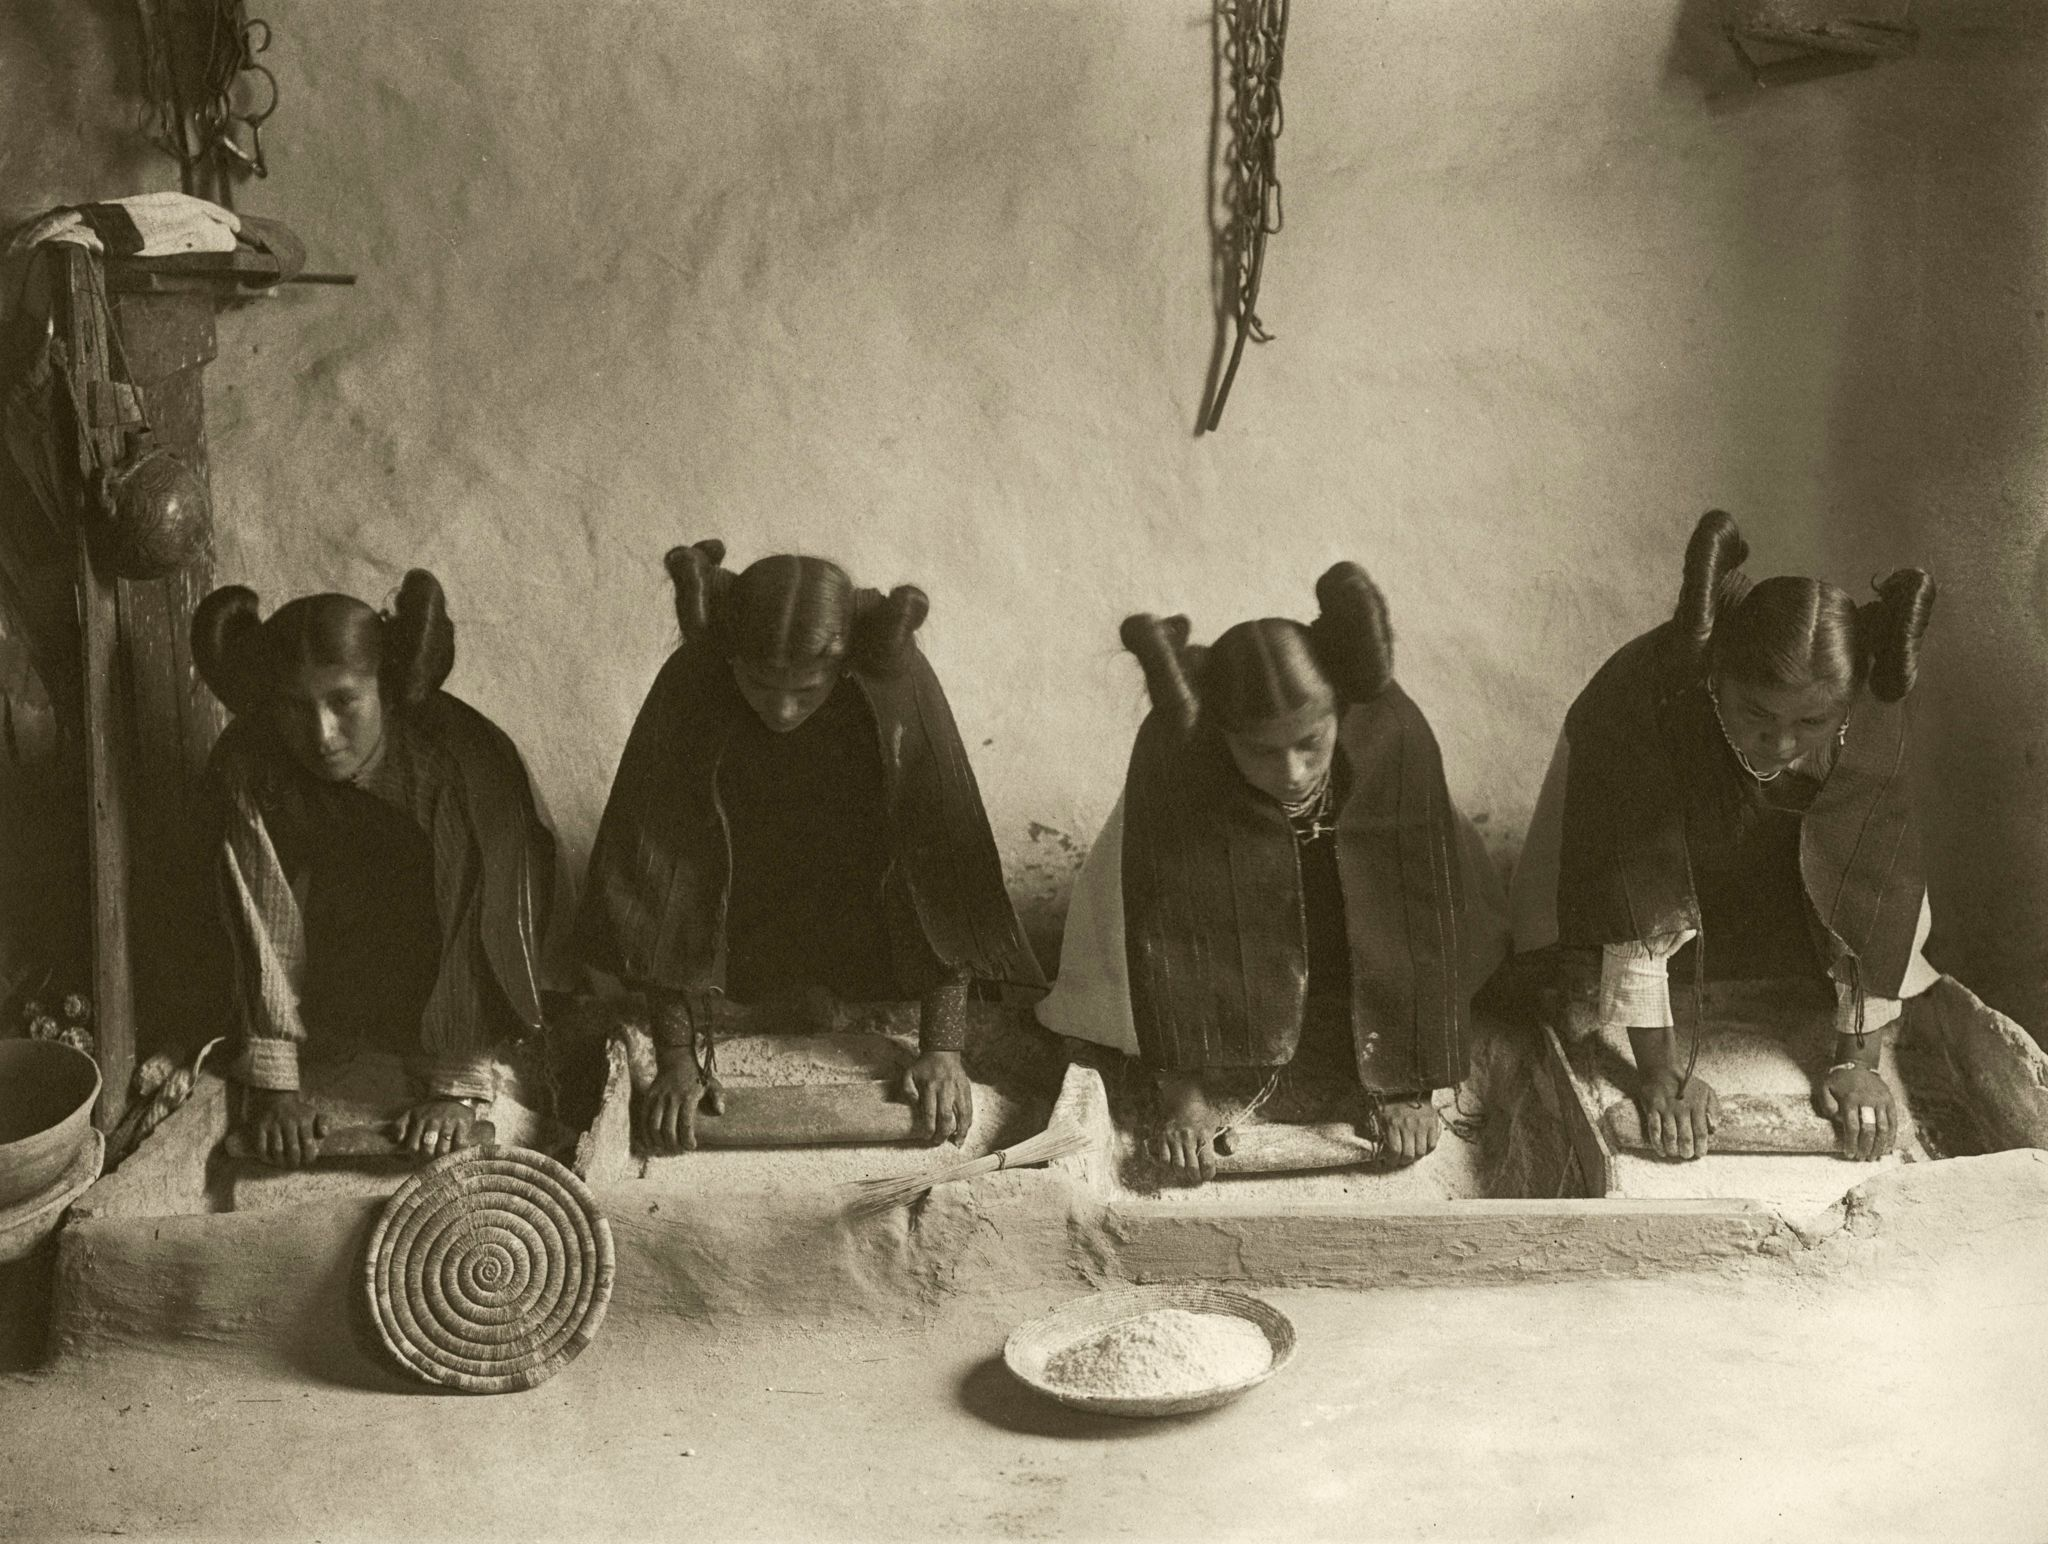 Hopi women grinding grain in a mealing trough.